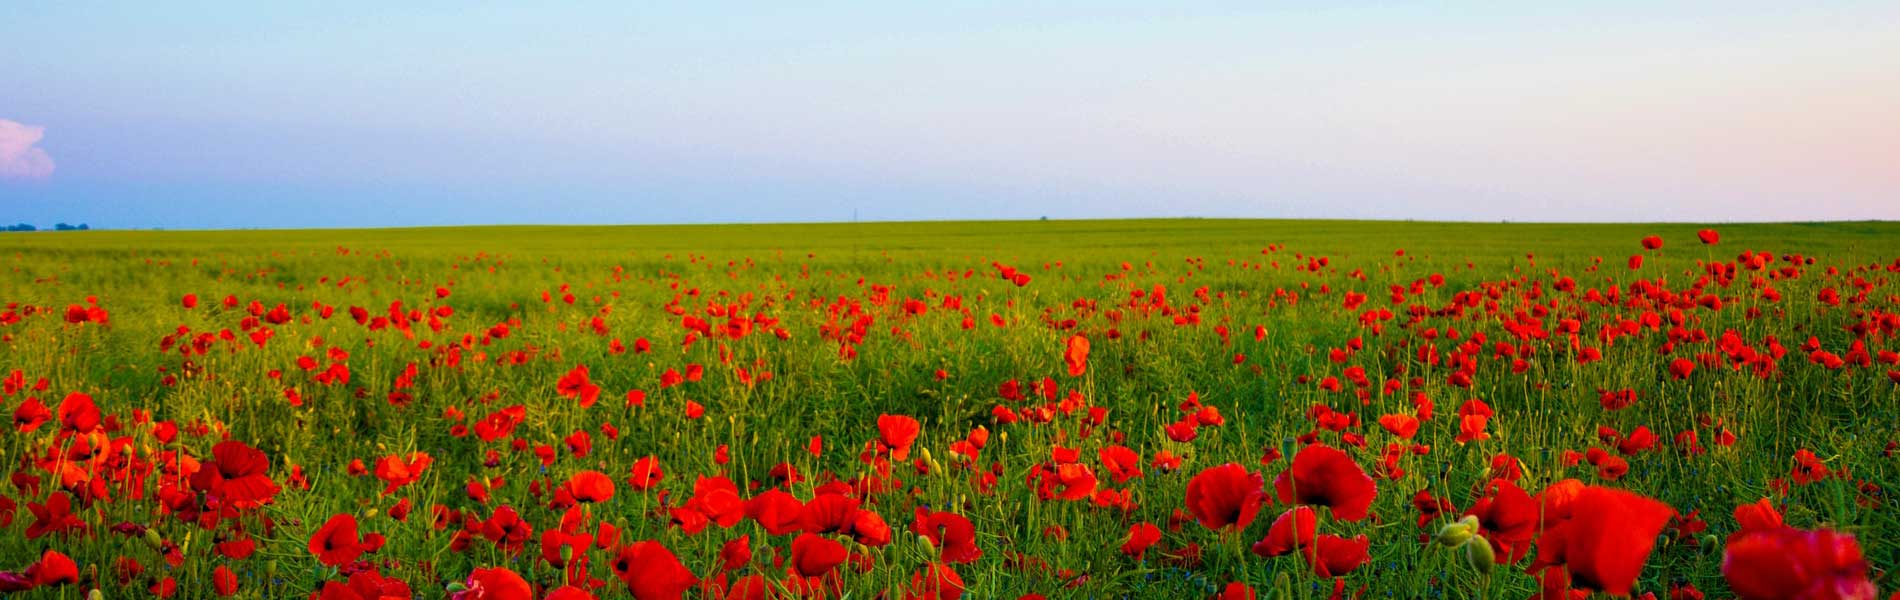 red-flowering-green-field